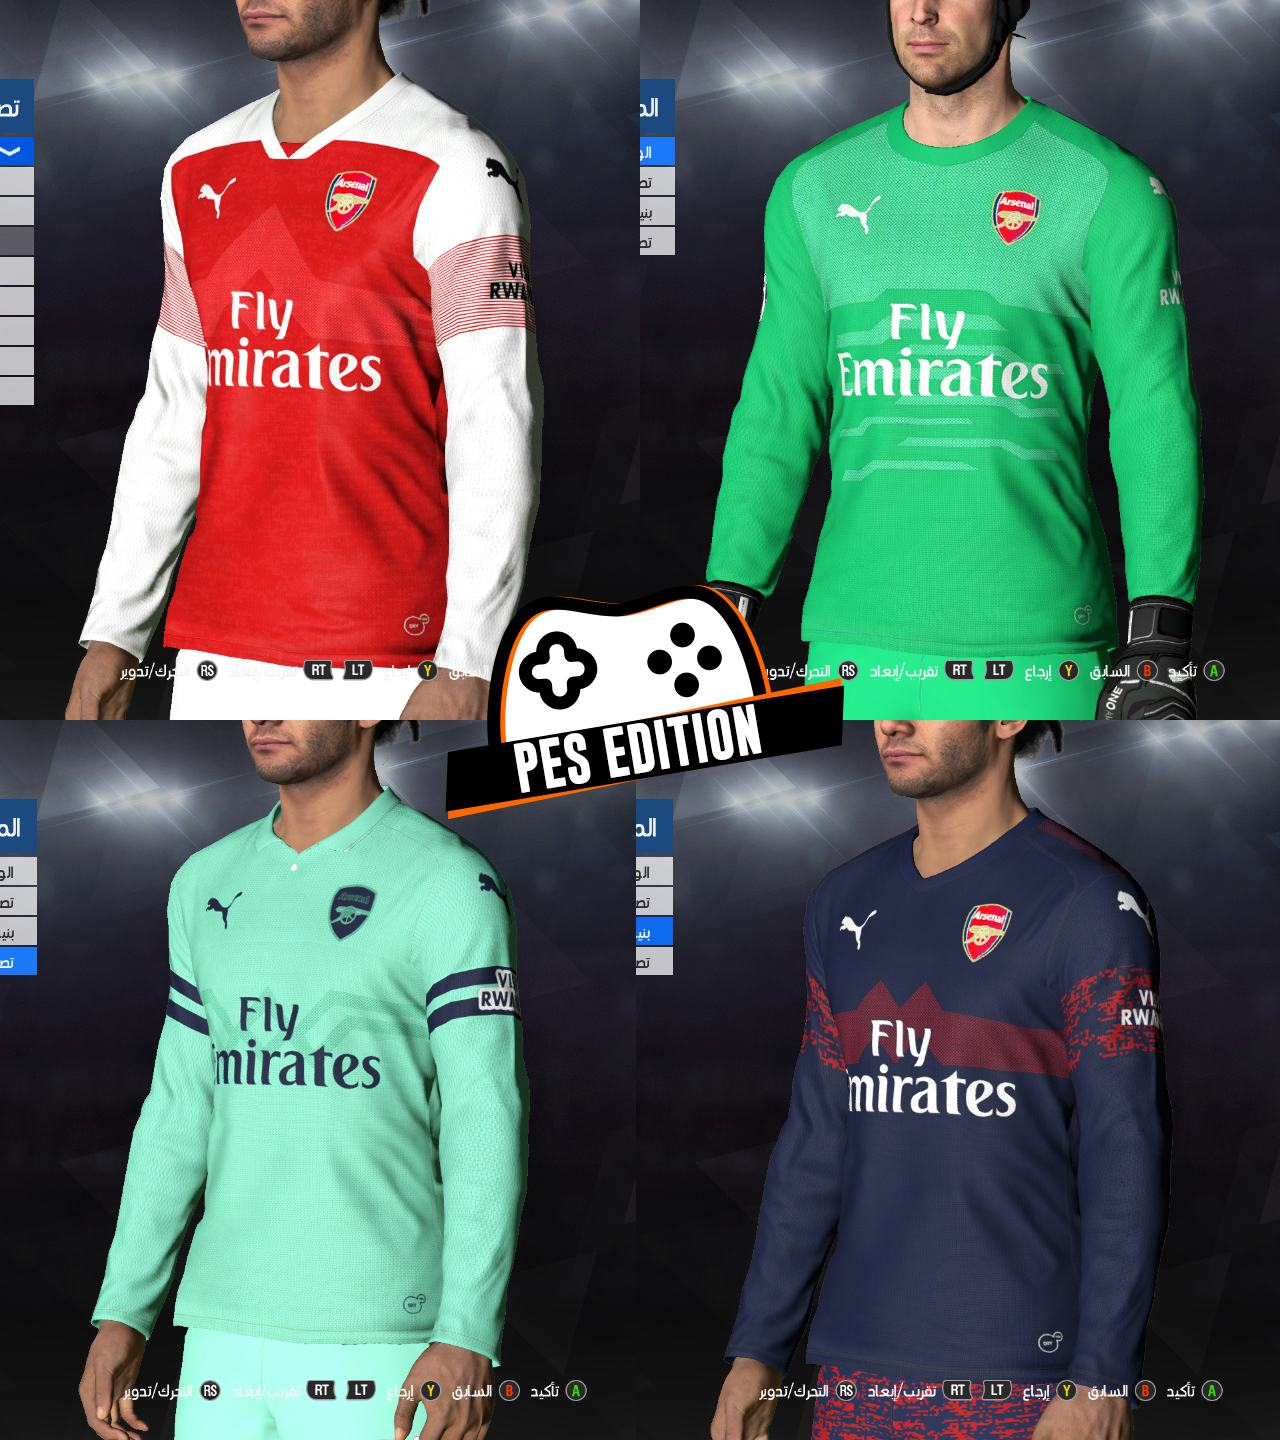 Ultigamerz Pes 2010 Pes 2011 Face: Ultigamerz: PES 2017 / PES 2016 Arsenal Kits 2018/19